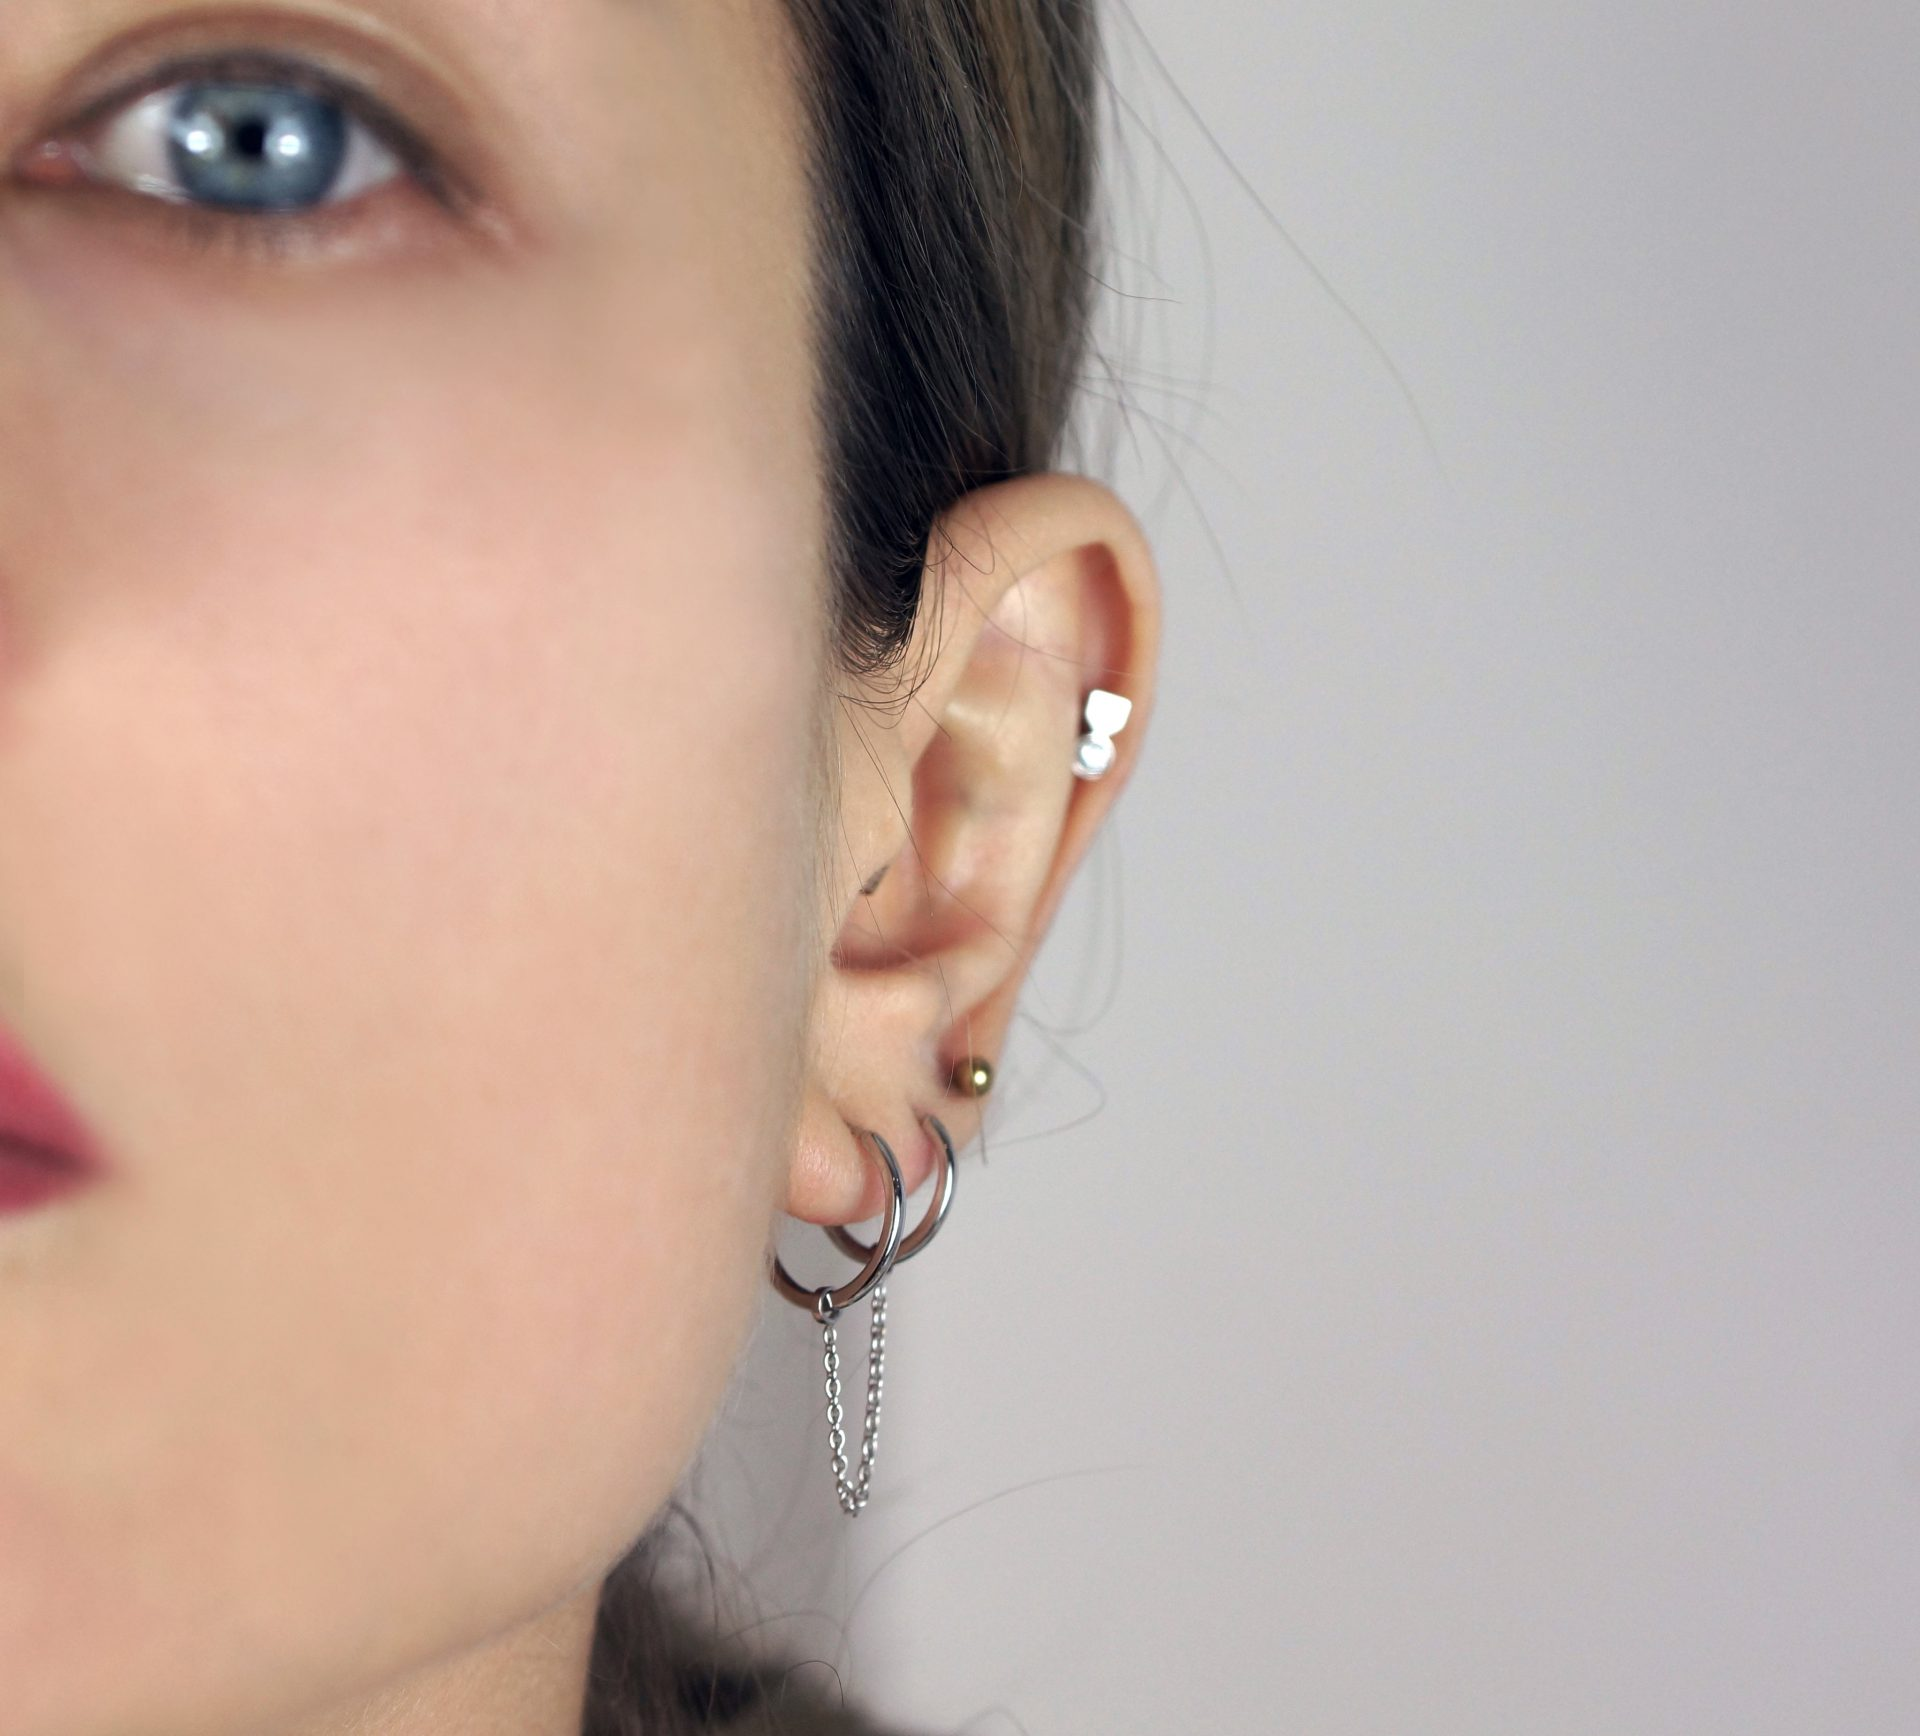 18k-gold-cartilage-earrings-hoops-luxury-piercing-lena-cohen-2